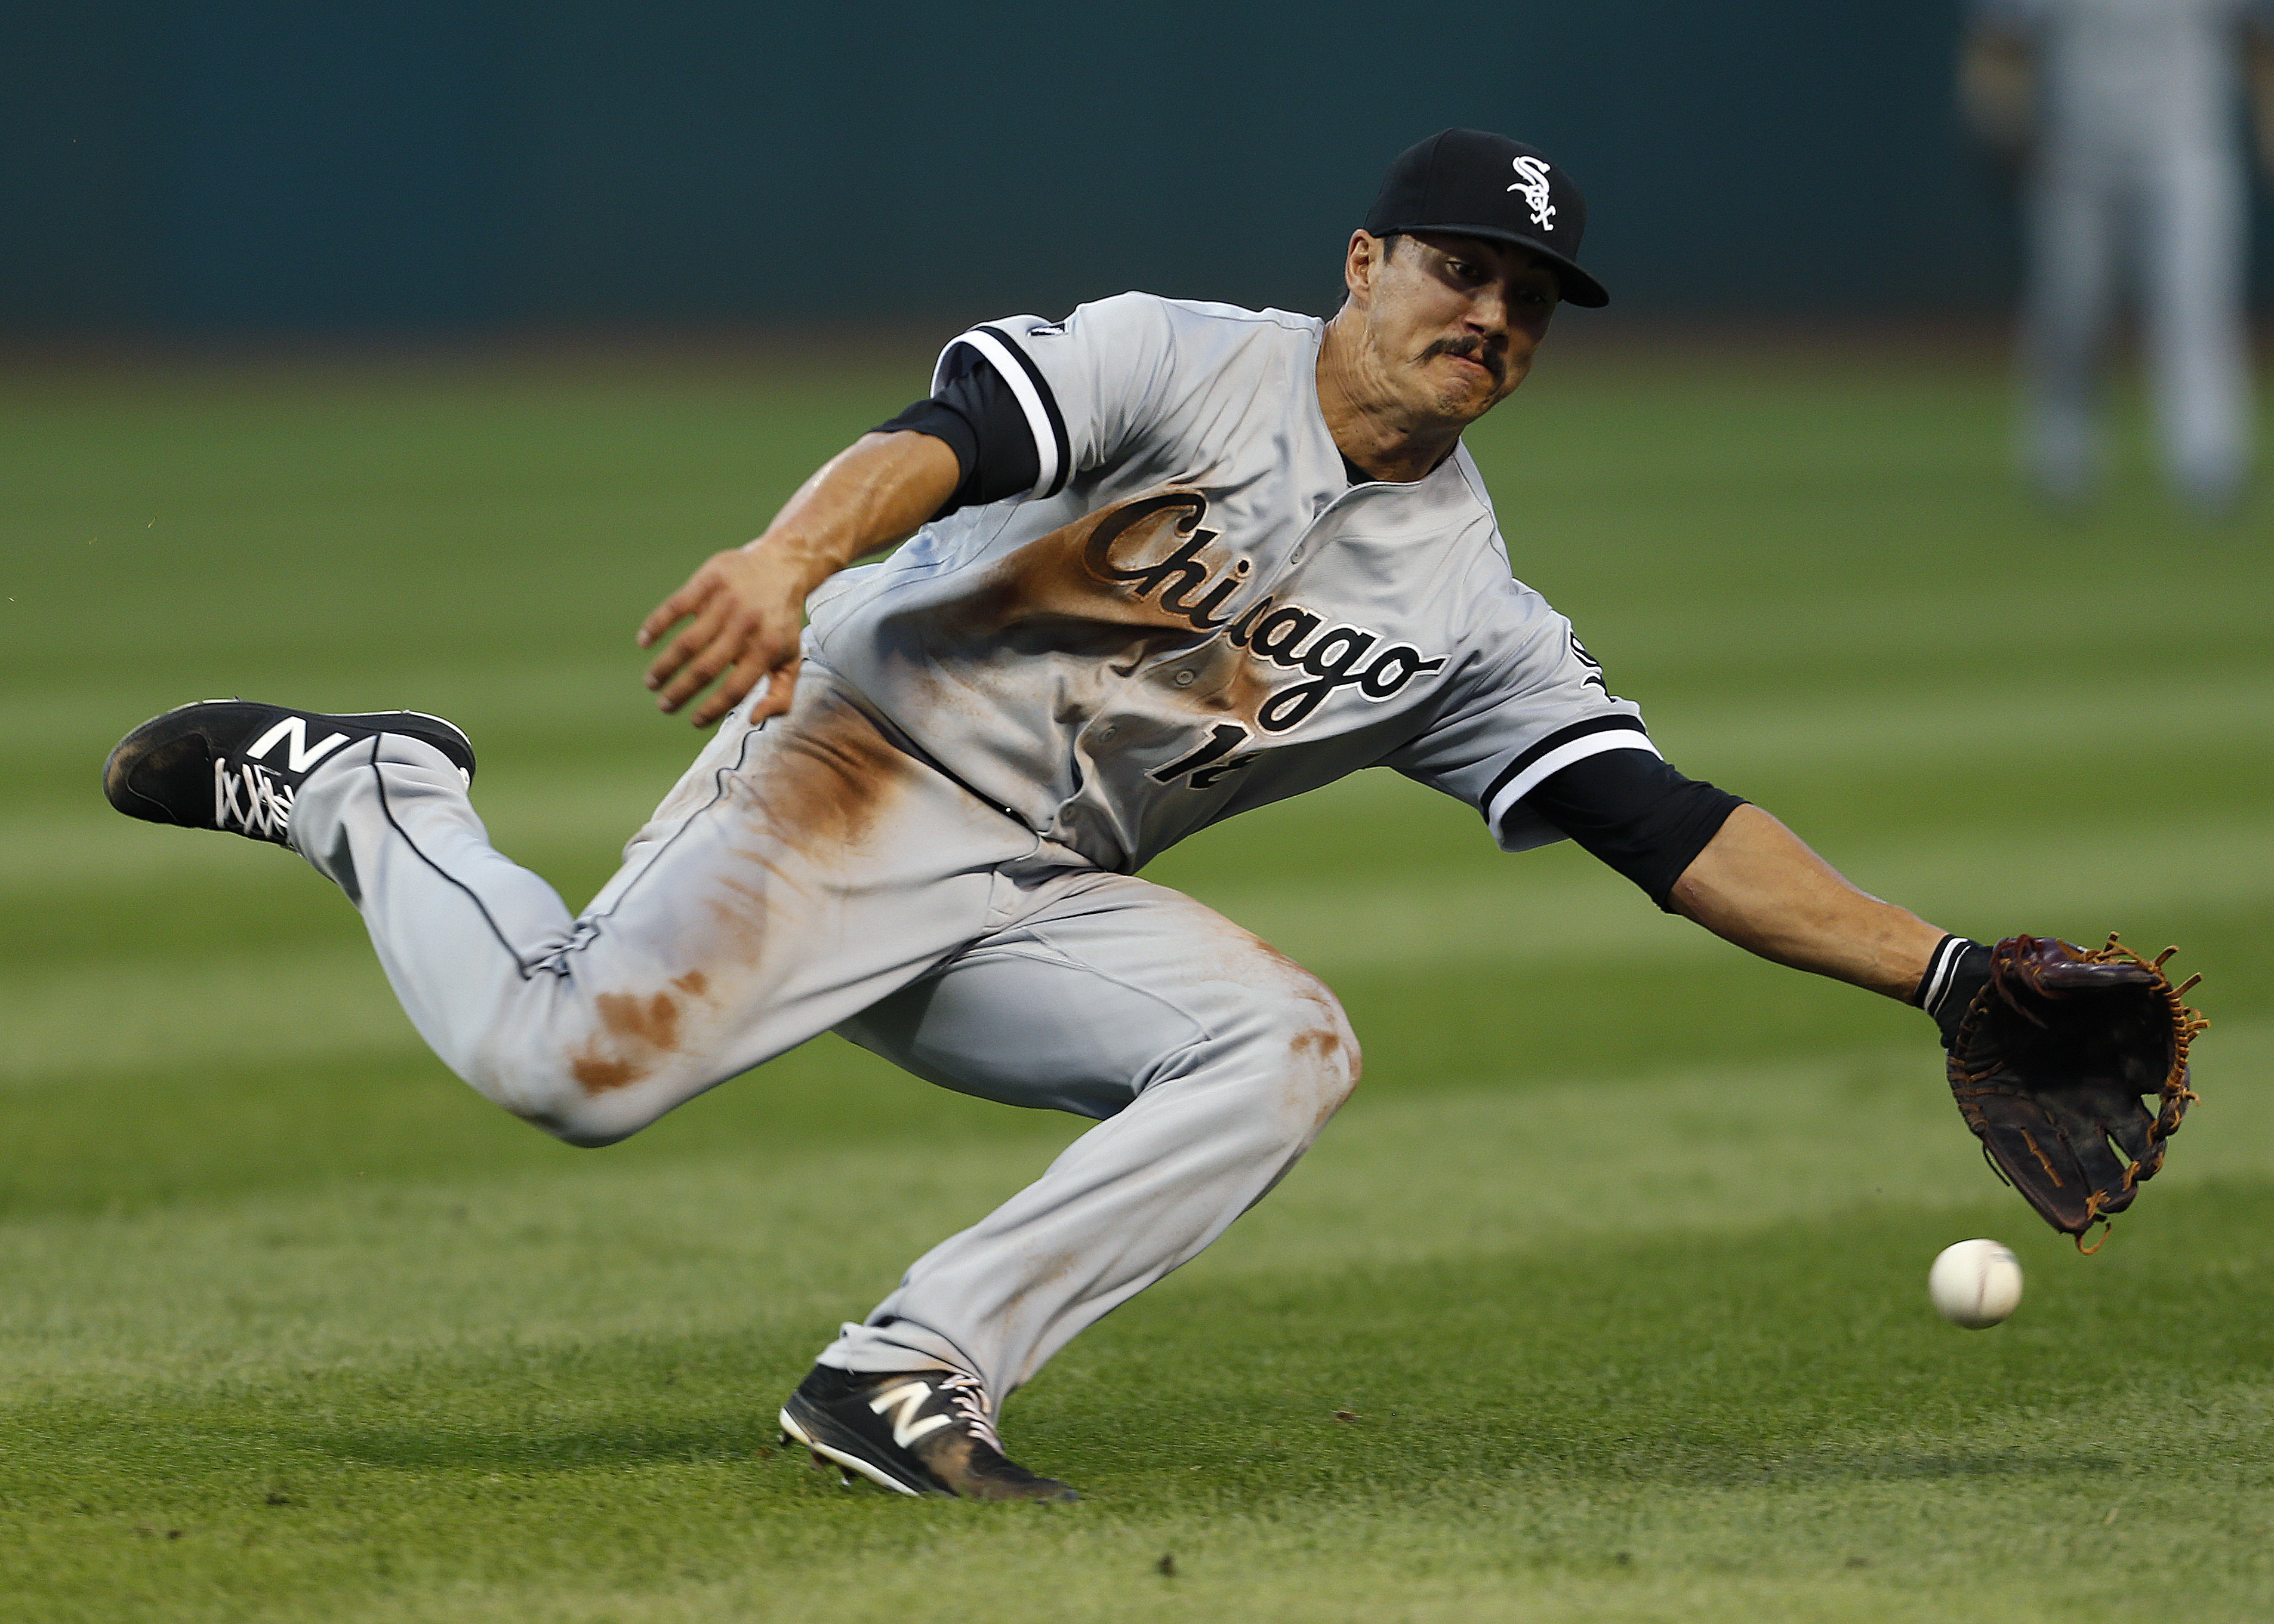 Chicago White Sox's Tyler Saladino tries to field a single by Cleveland Indians' Lonnie Chisenhall during the third inning of a baseball game Wednesday, Aug. 17, 2016, in Cleveland. (AP Photo/Ron Schwane)